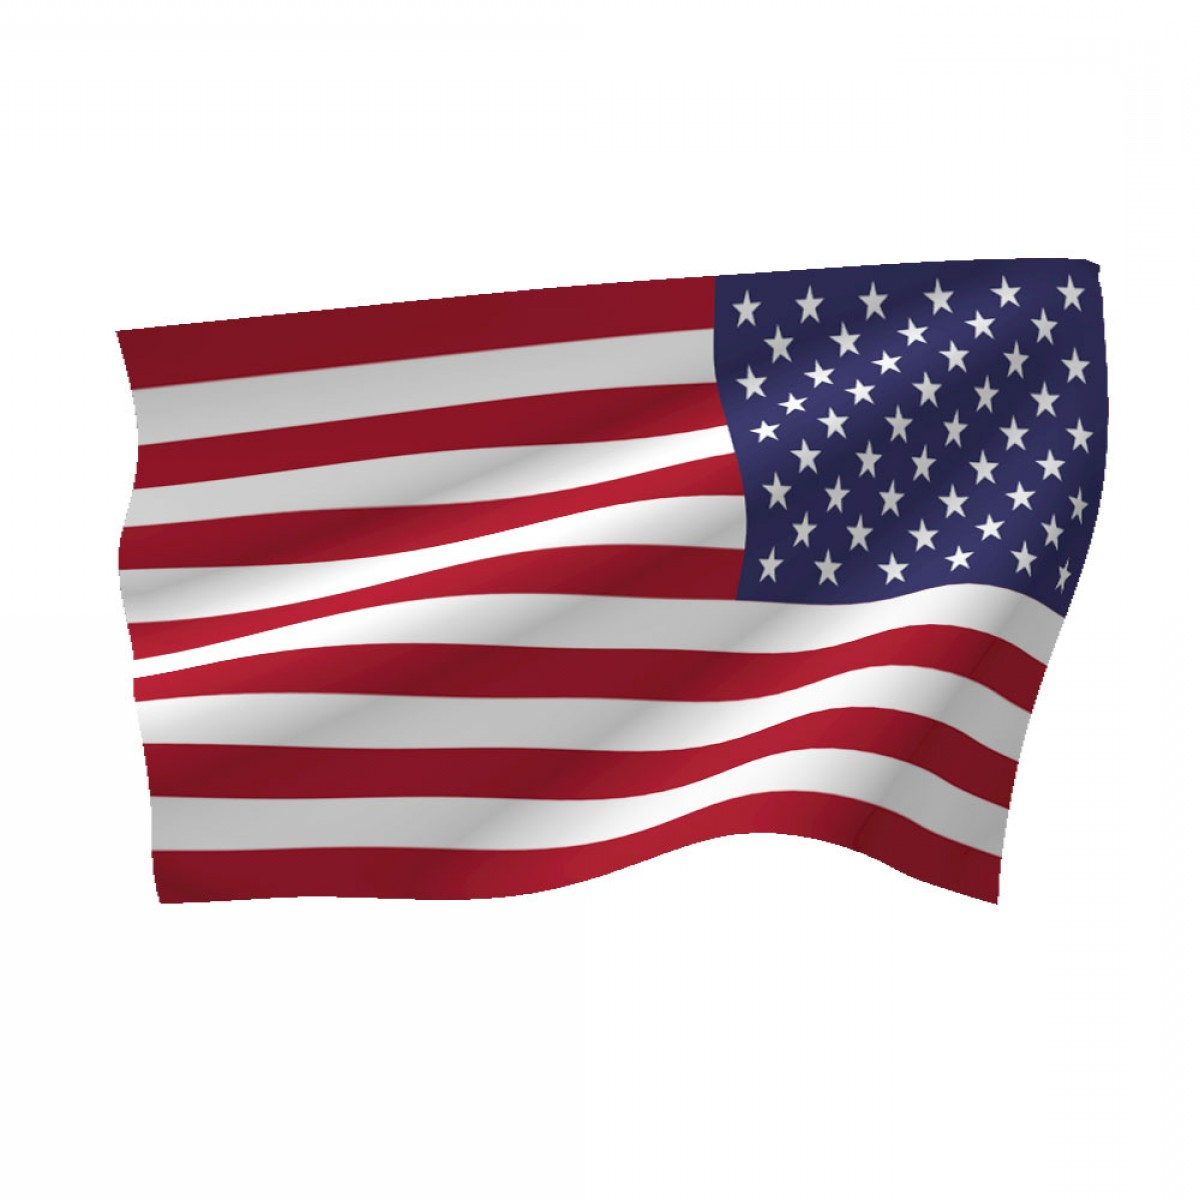 American Flag On Pole Vector: Ft X Ft Ply Polyester American Flag With Pole Sleeve